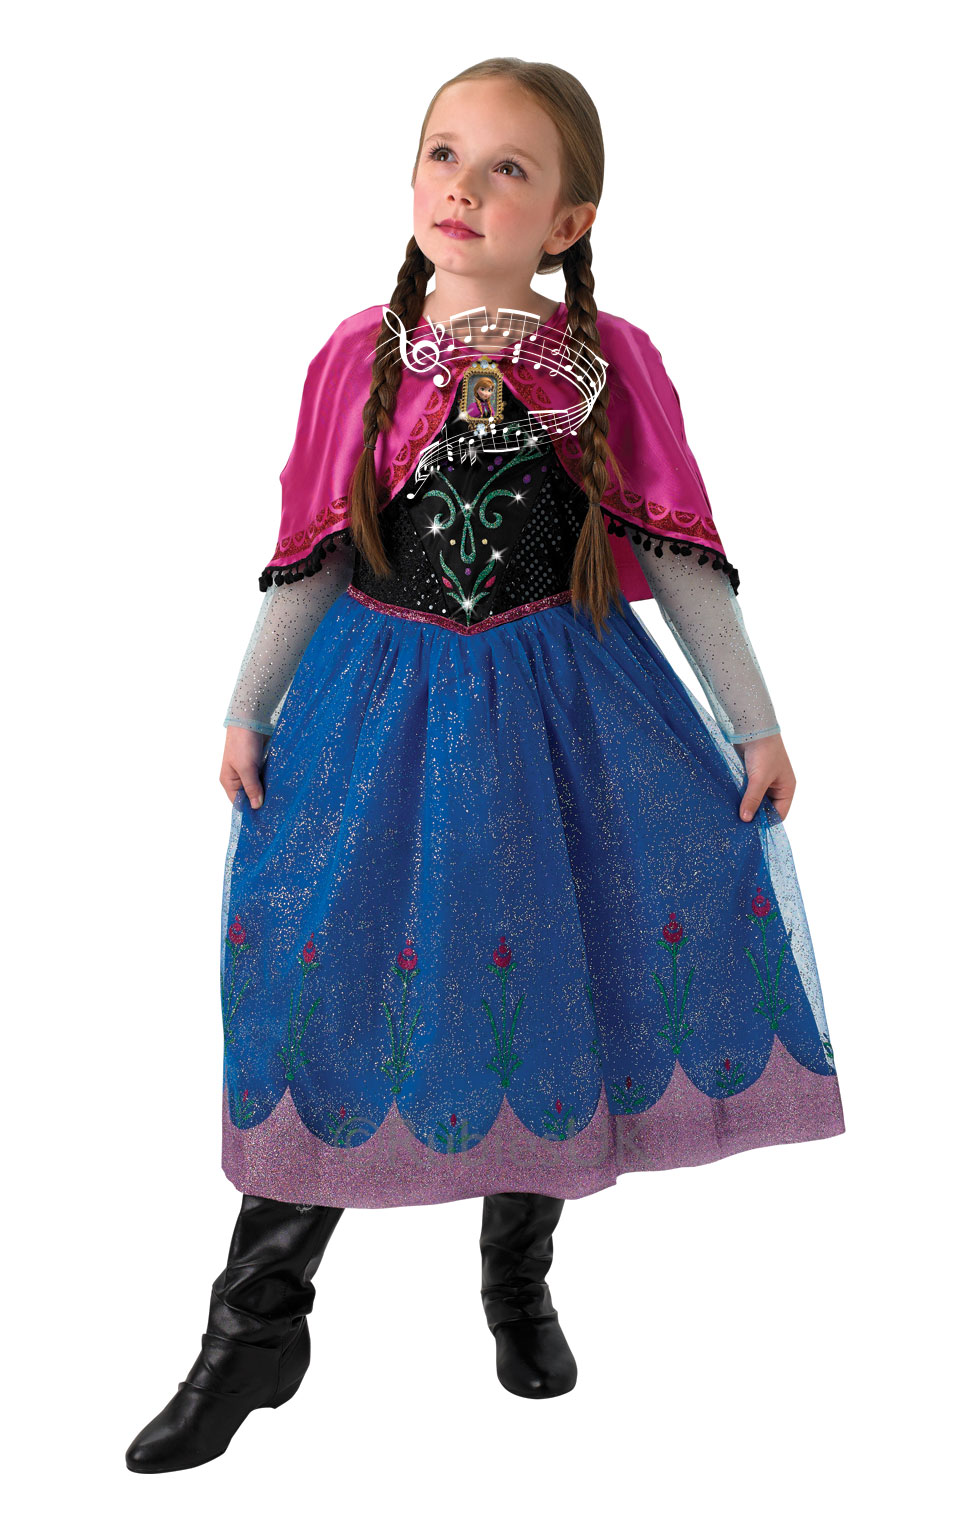 SALE! Kids Licensed Disney Princess Frozen Anna / Elsa Girls Fancy ...